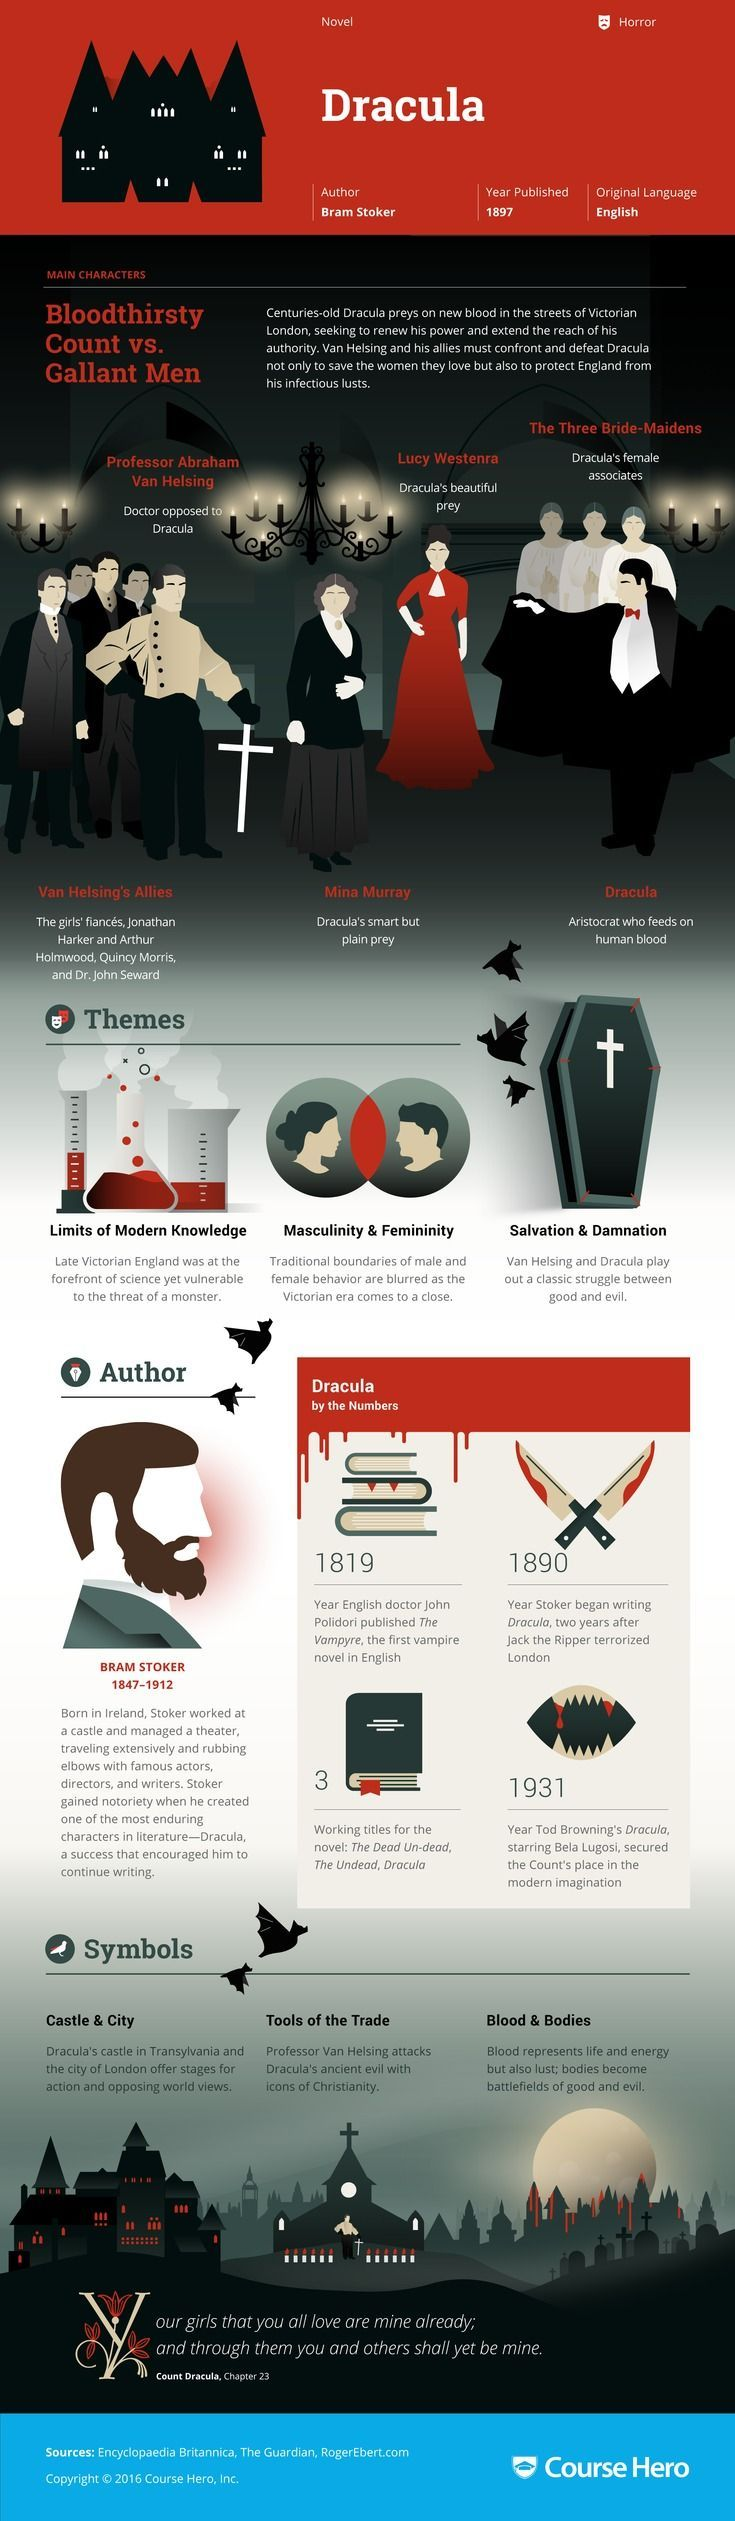 Dracula Infographic | Course Hero